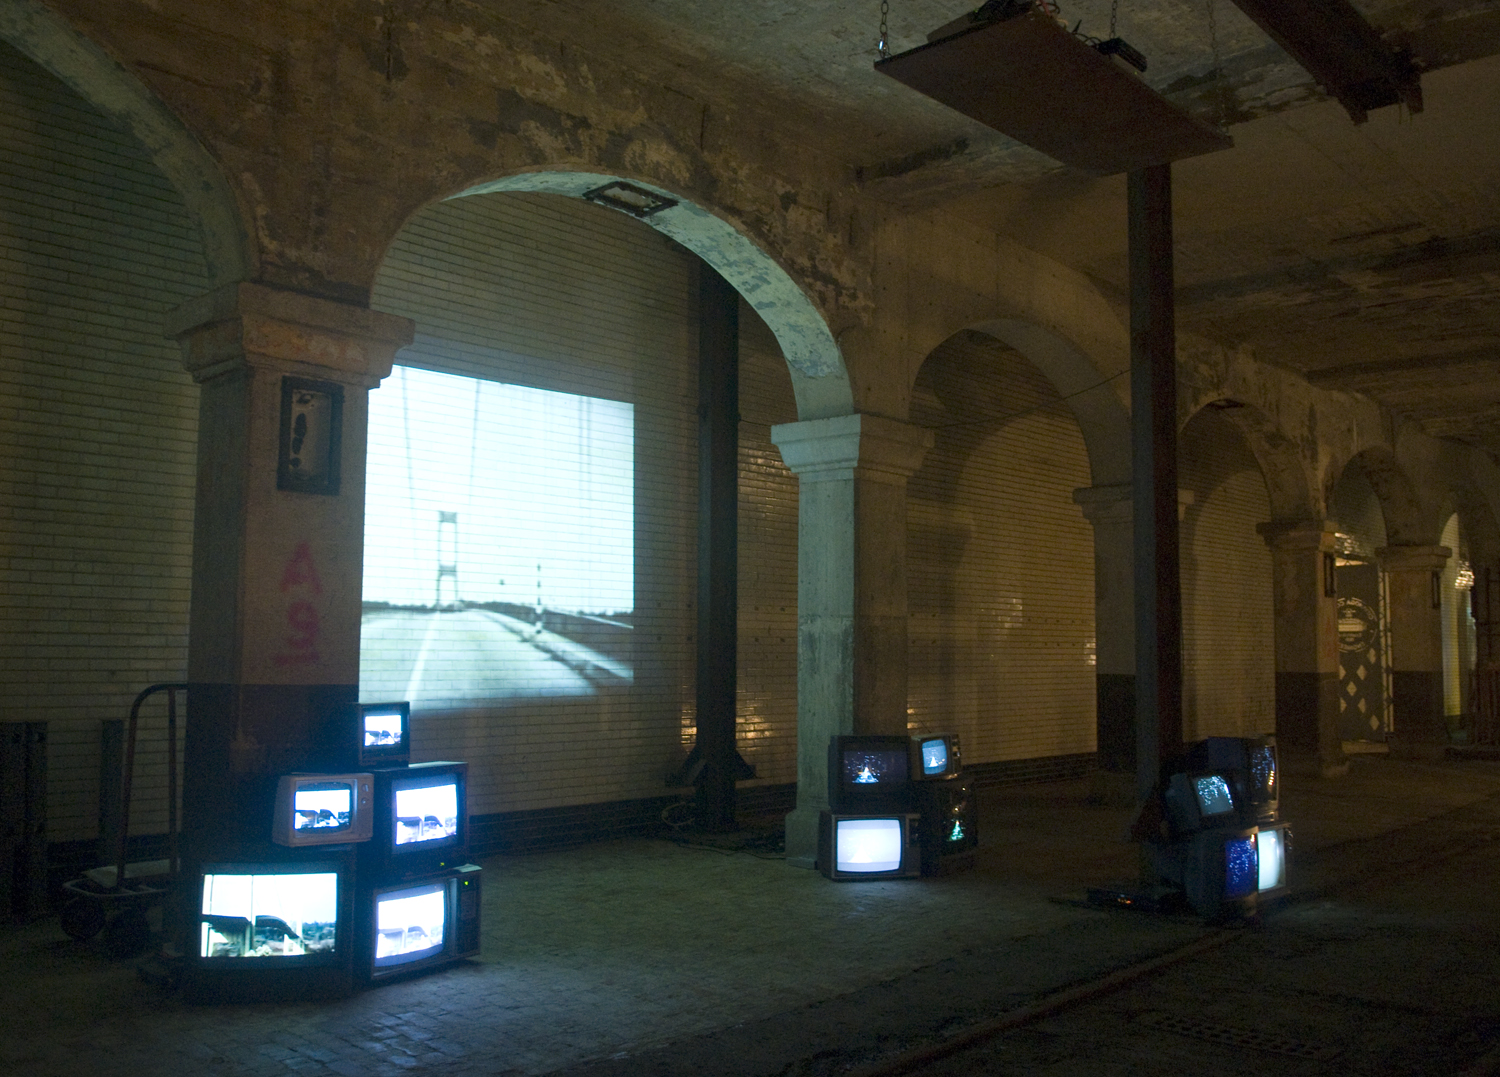 Installation from the CUDC's 2009 Bridge Project, a pop-up weekend-long event where the lower level of the Detroit-Superior bridge was opened up and artists were invited to create installations and perform. Photo by Elizabeth Russell.